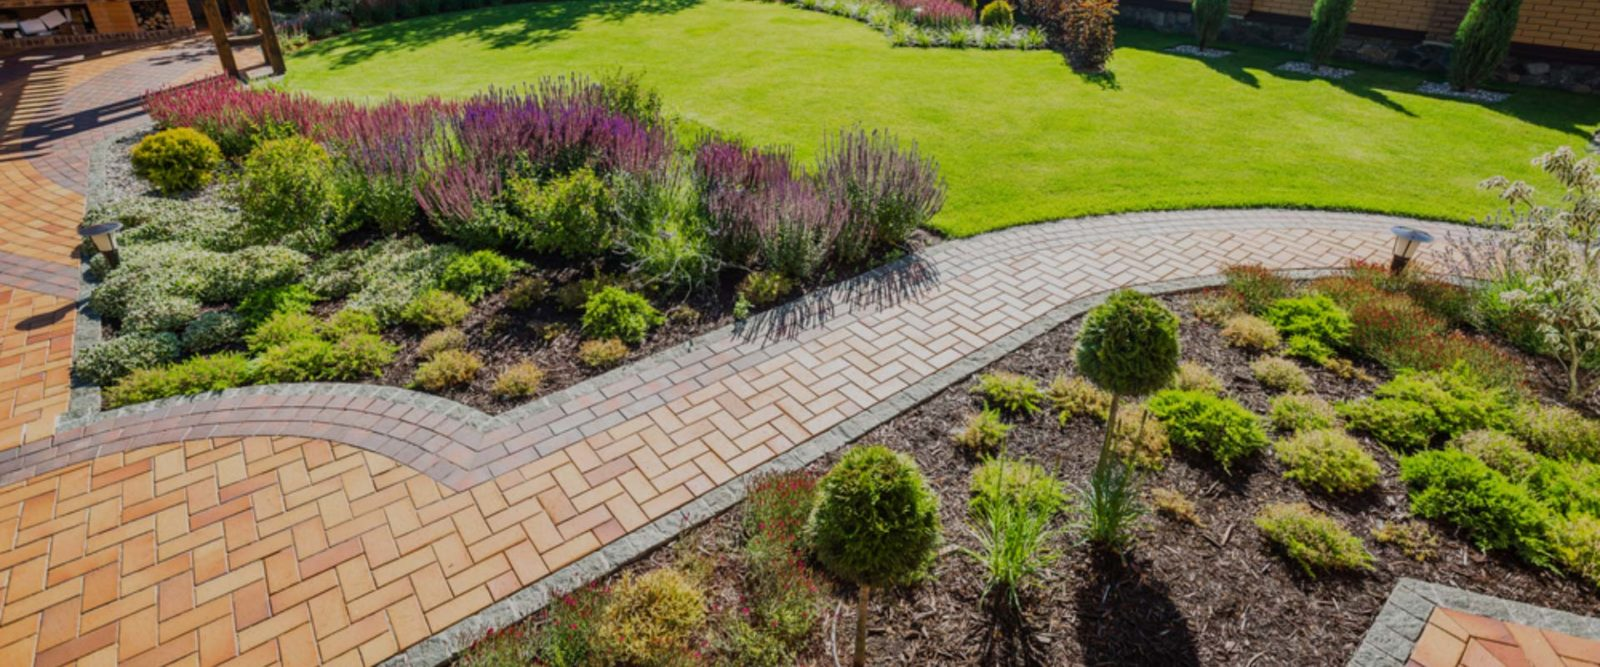 Block Paving Patios And Driveways Brentwood Essex